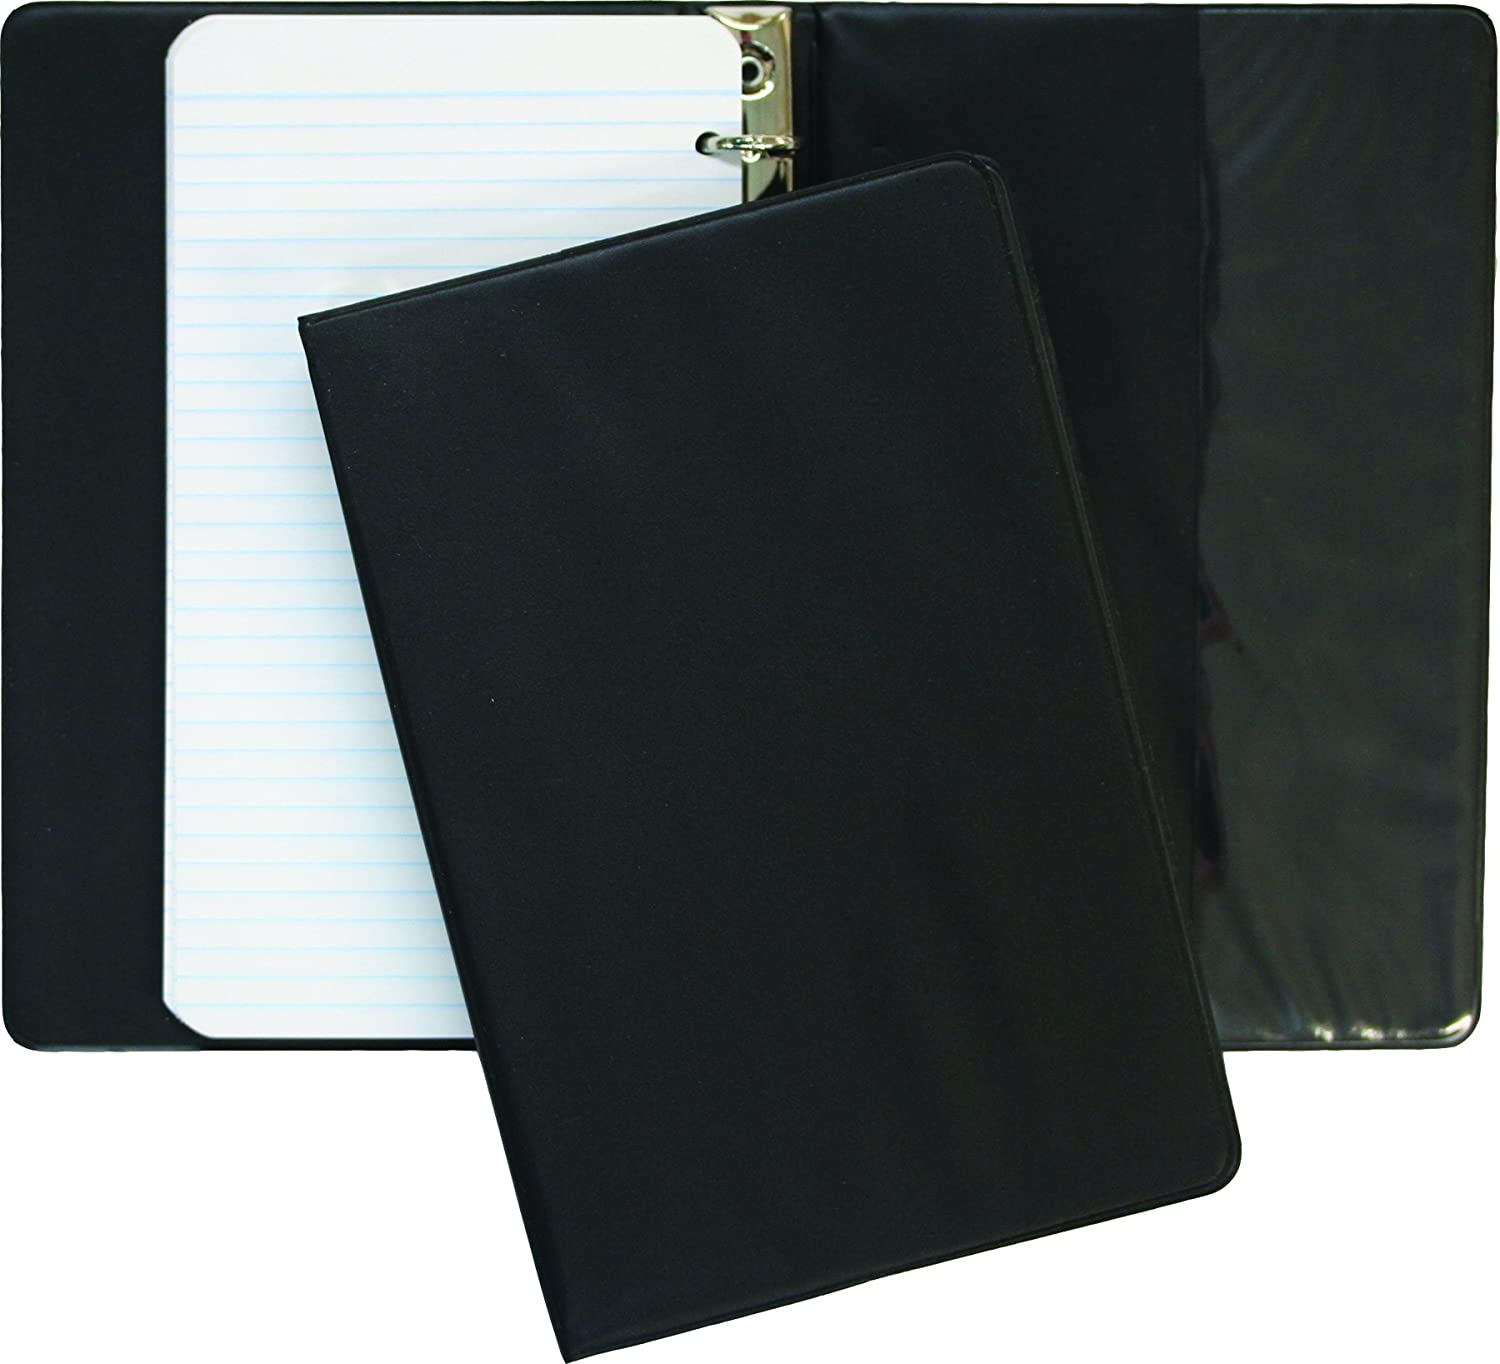 Hilroy 44724 1/2 Inch Vinyl Memo Binder, 6.75x3.75-Inch, 6 Rings, Includes 50-Sheet of Ruled Paper, Black